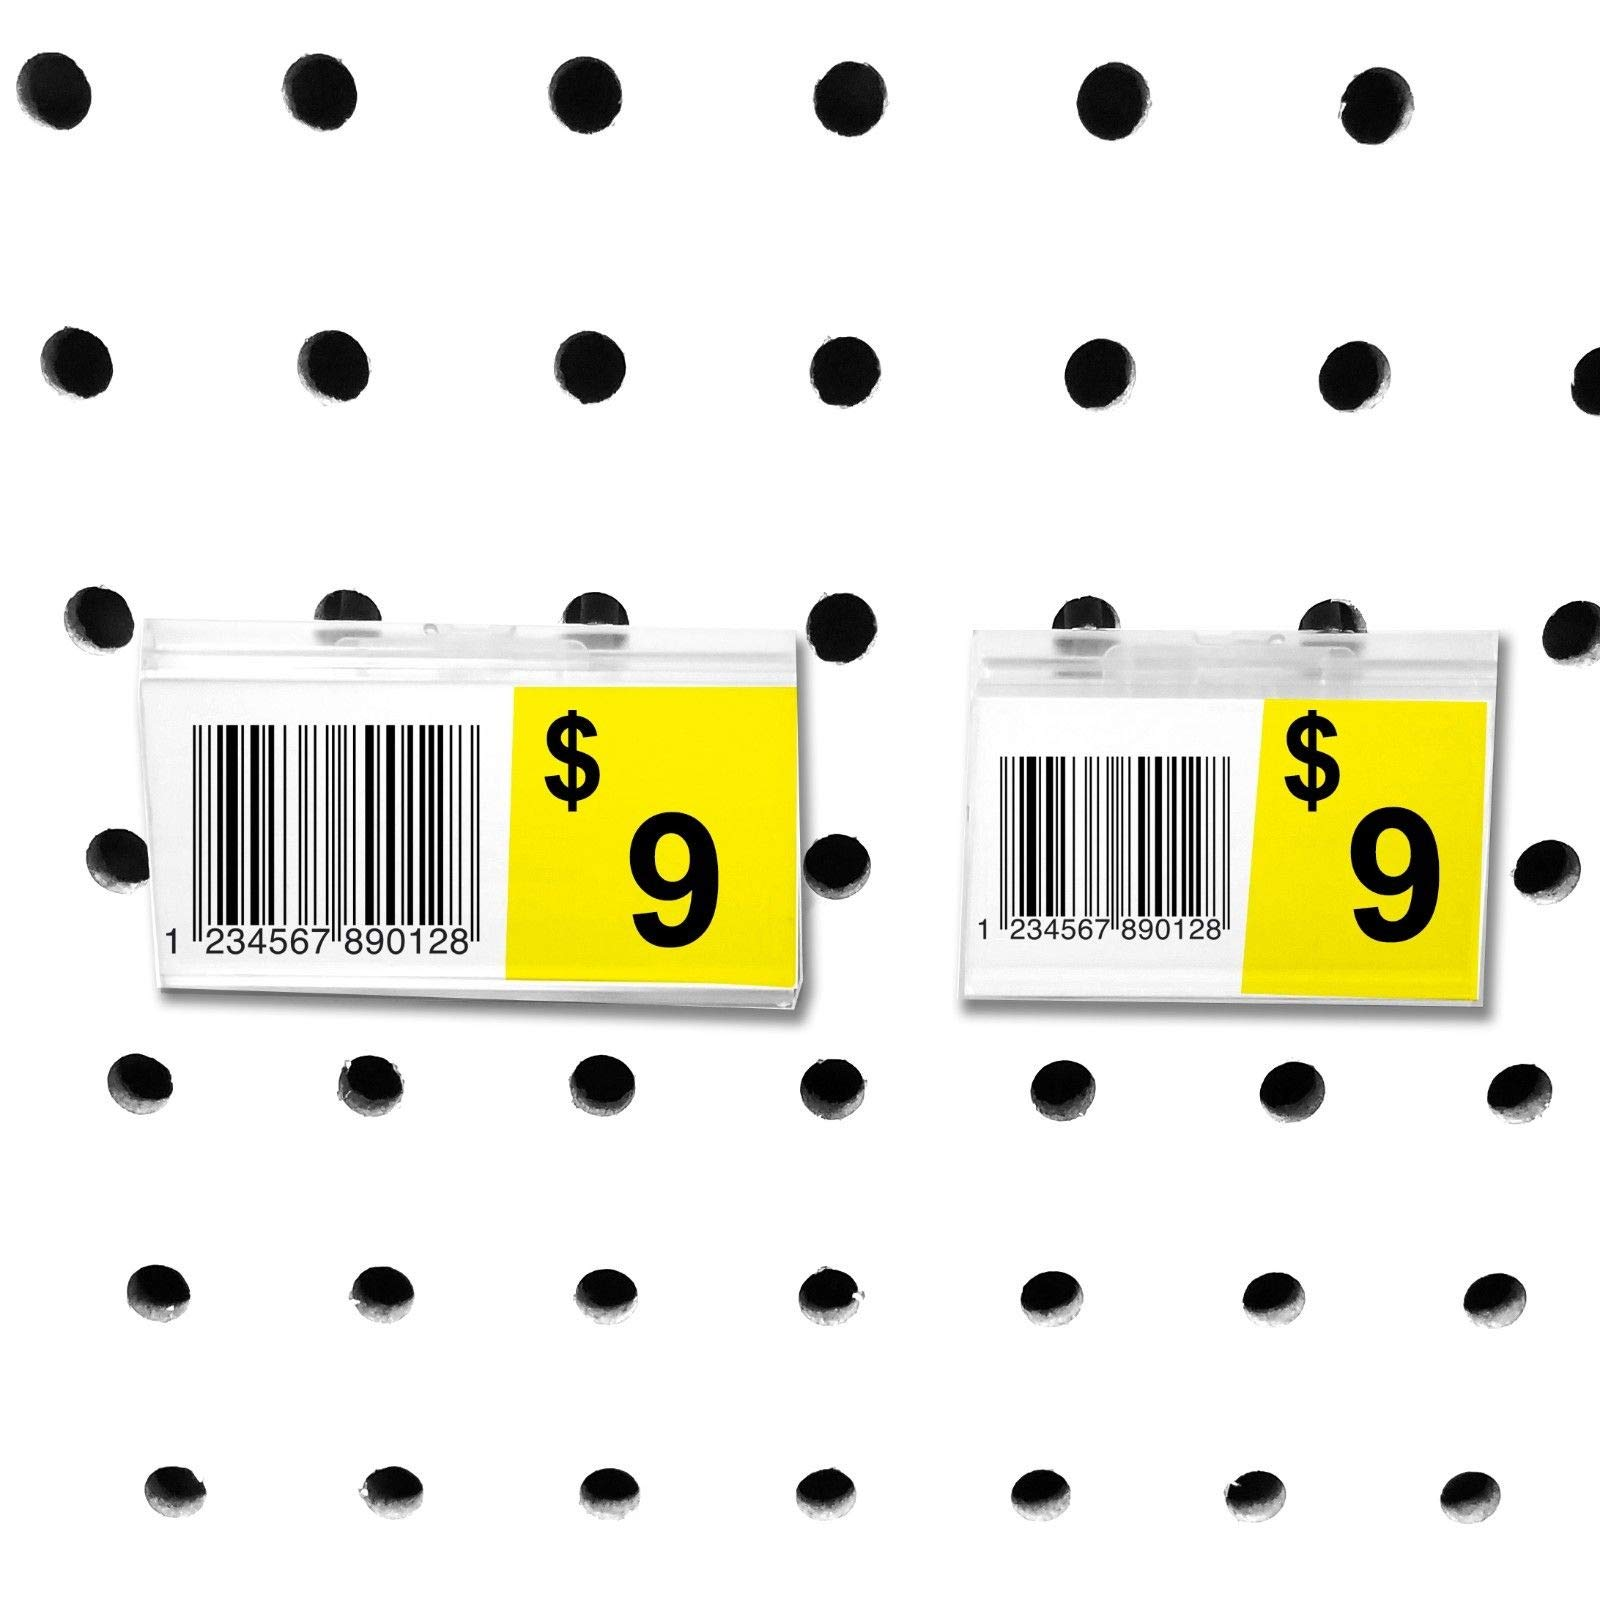 Pegboard Label Holder, Scannable UPC Ticket Display with Slot for Peg Wall, 2'' L x 1.25'', 100 Pack